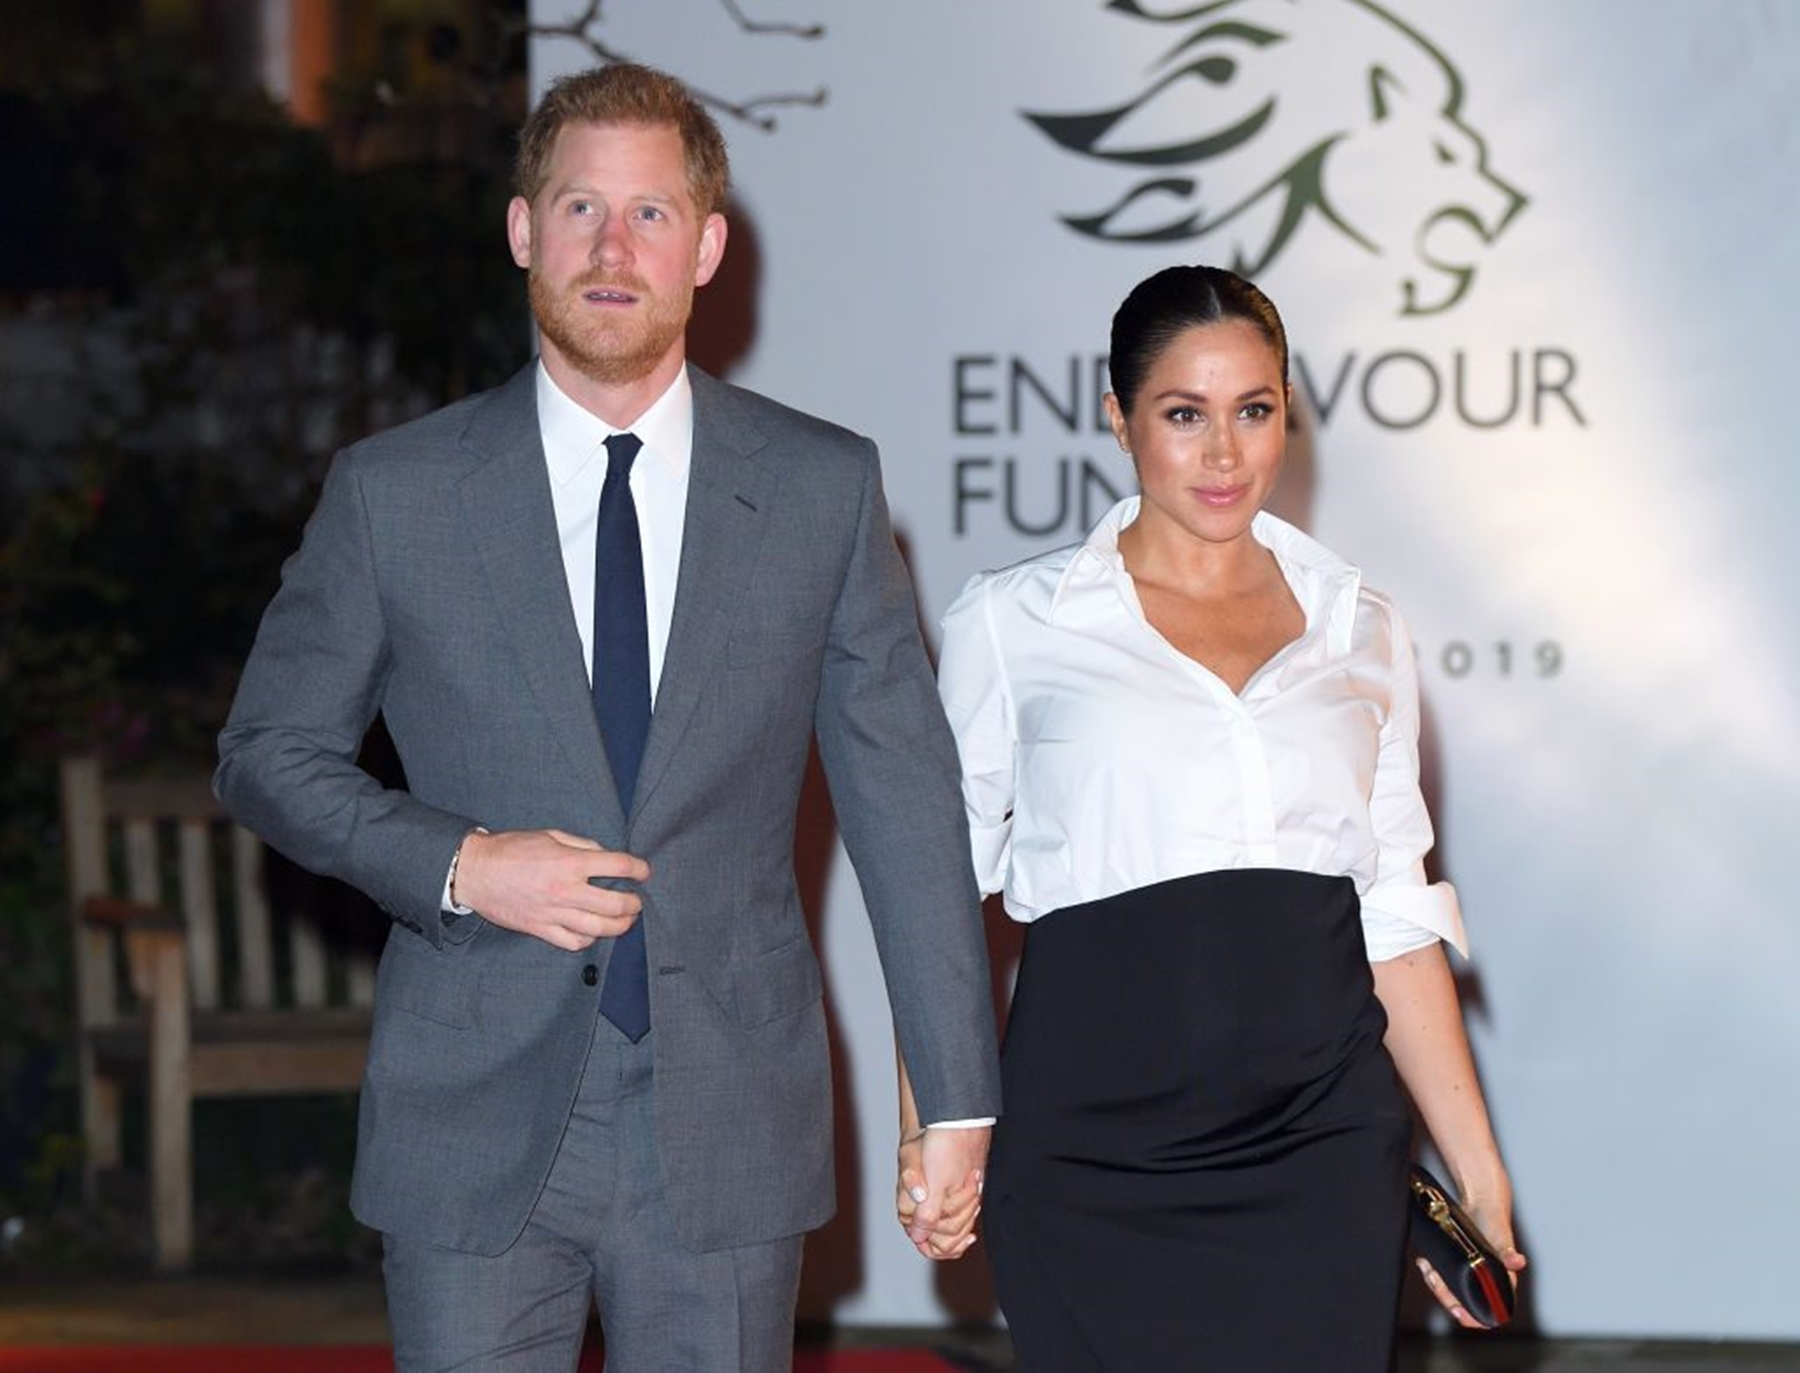 Prince Harry's friends have stopped inviting Meghan Markle over for dinner